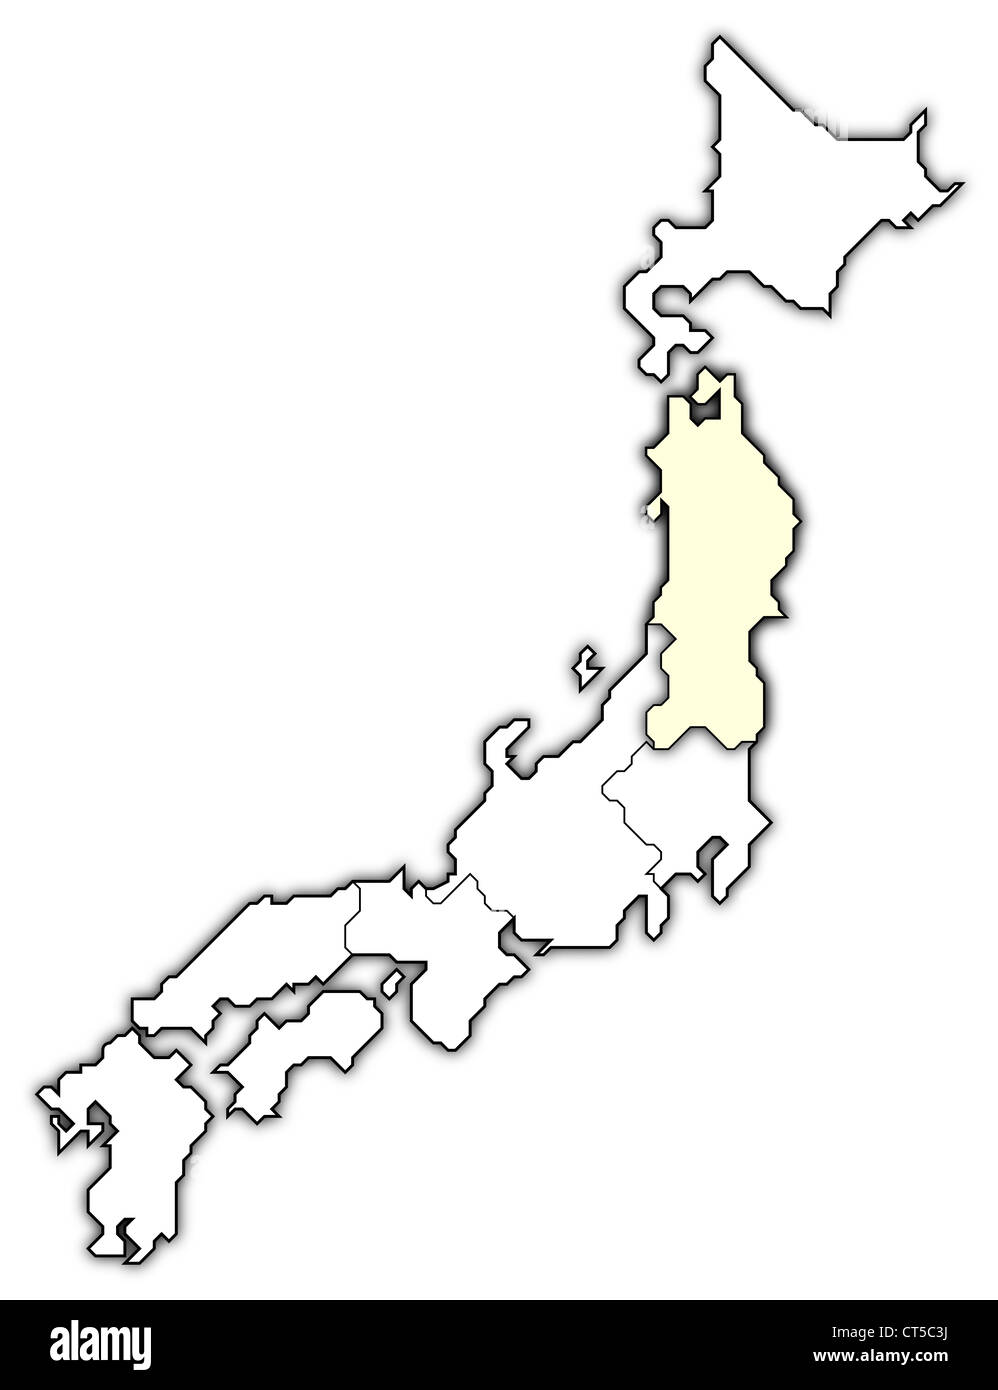 Political Map Of Japan With The Several Regions Where Tohoku Is